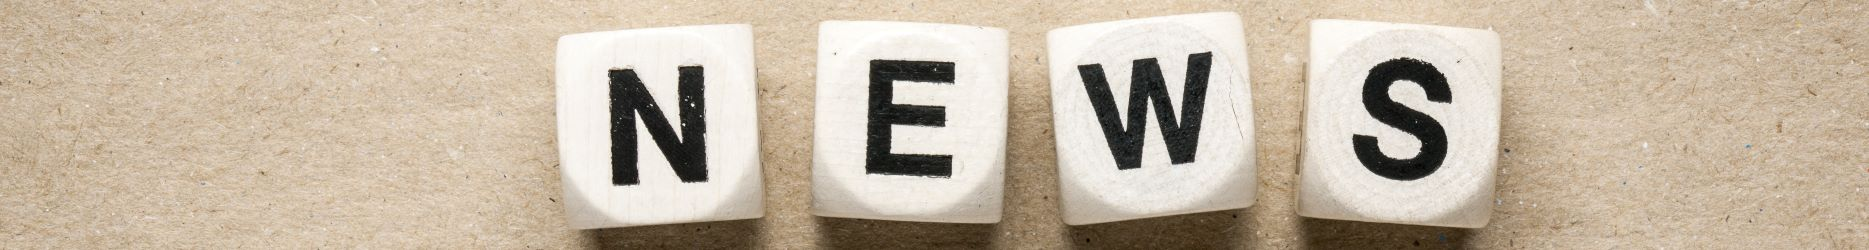 Image of dice spelling the word, 'News'.